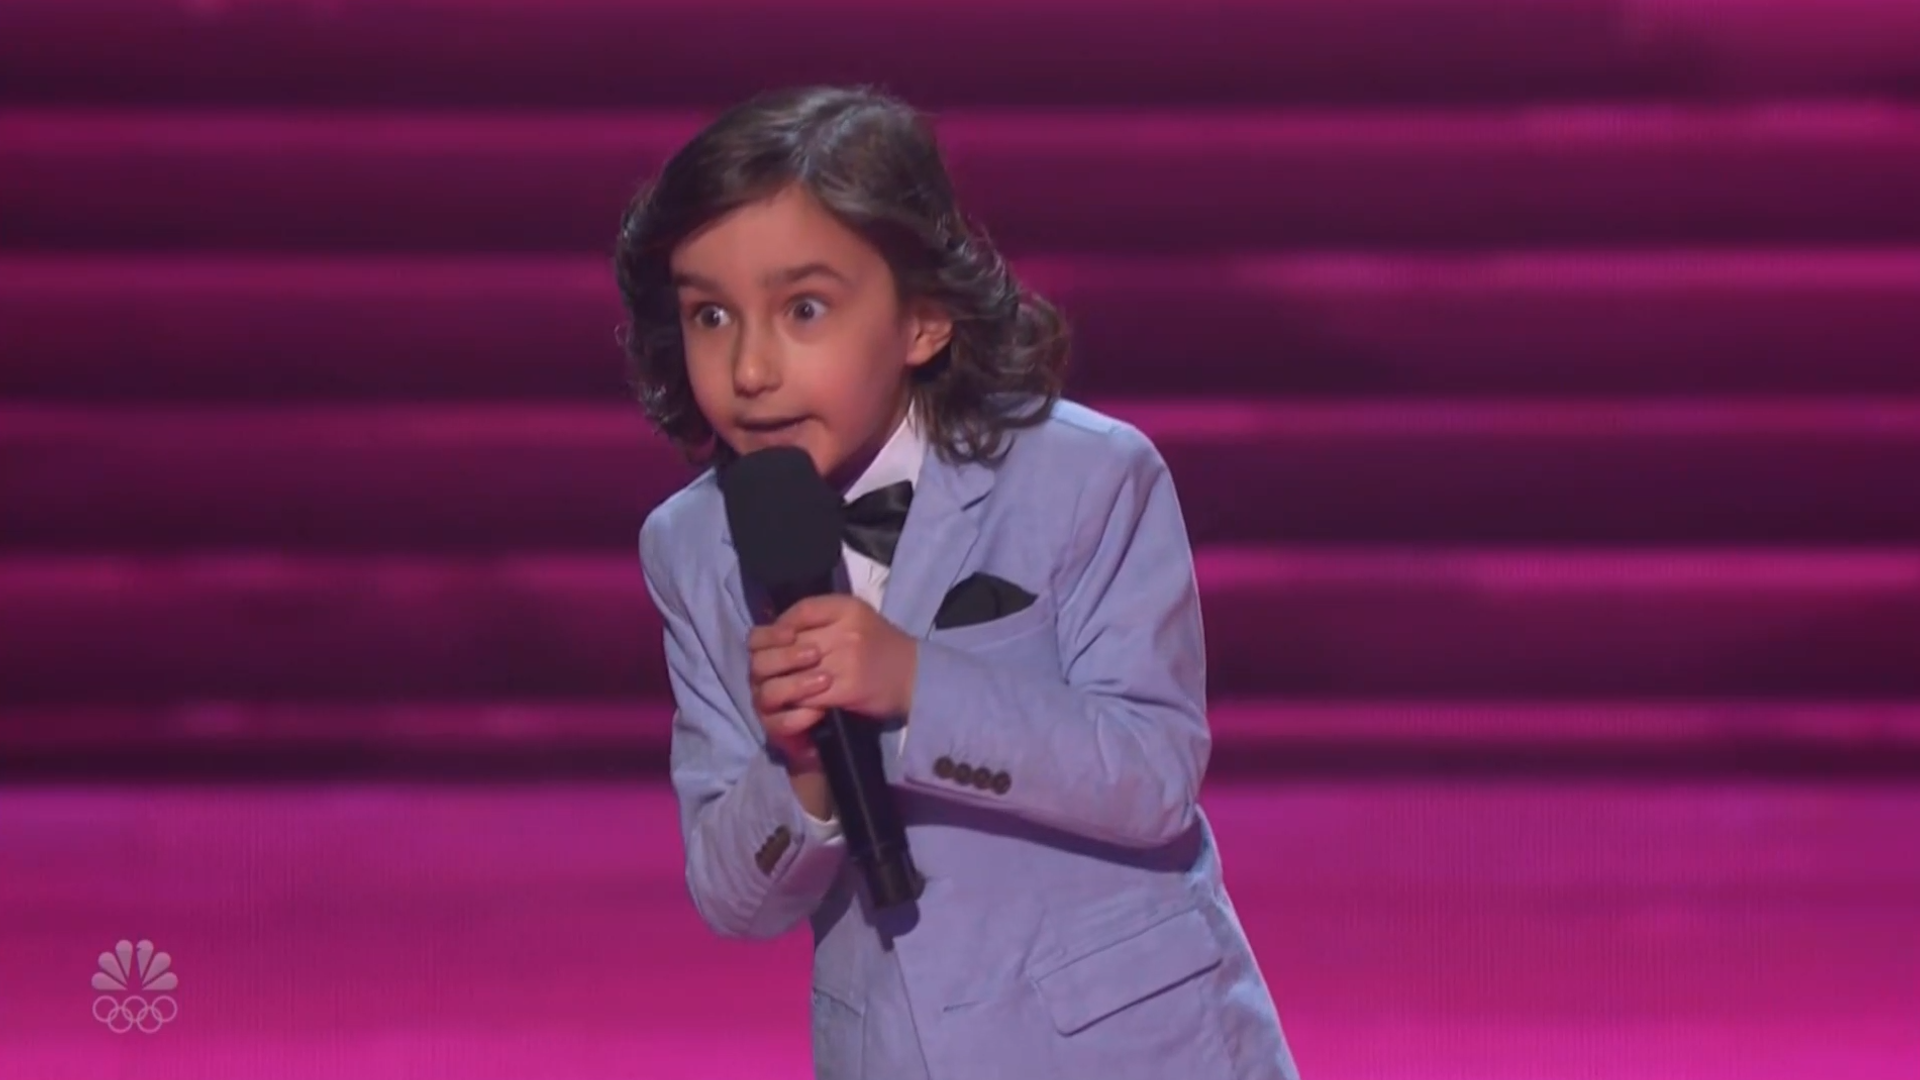 'AGT' judges can't believe shade 7-year-old comedian throws at them: 'He's vicious'